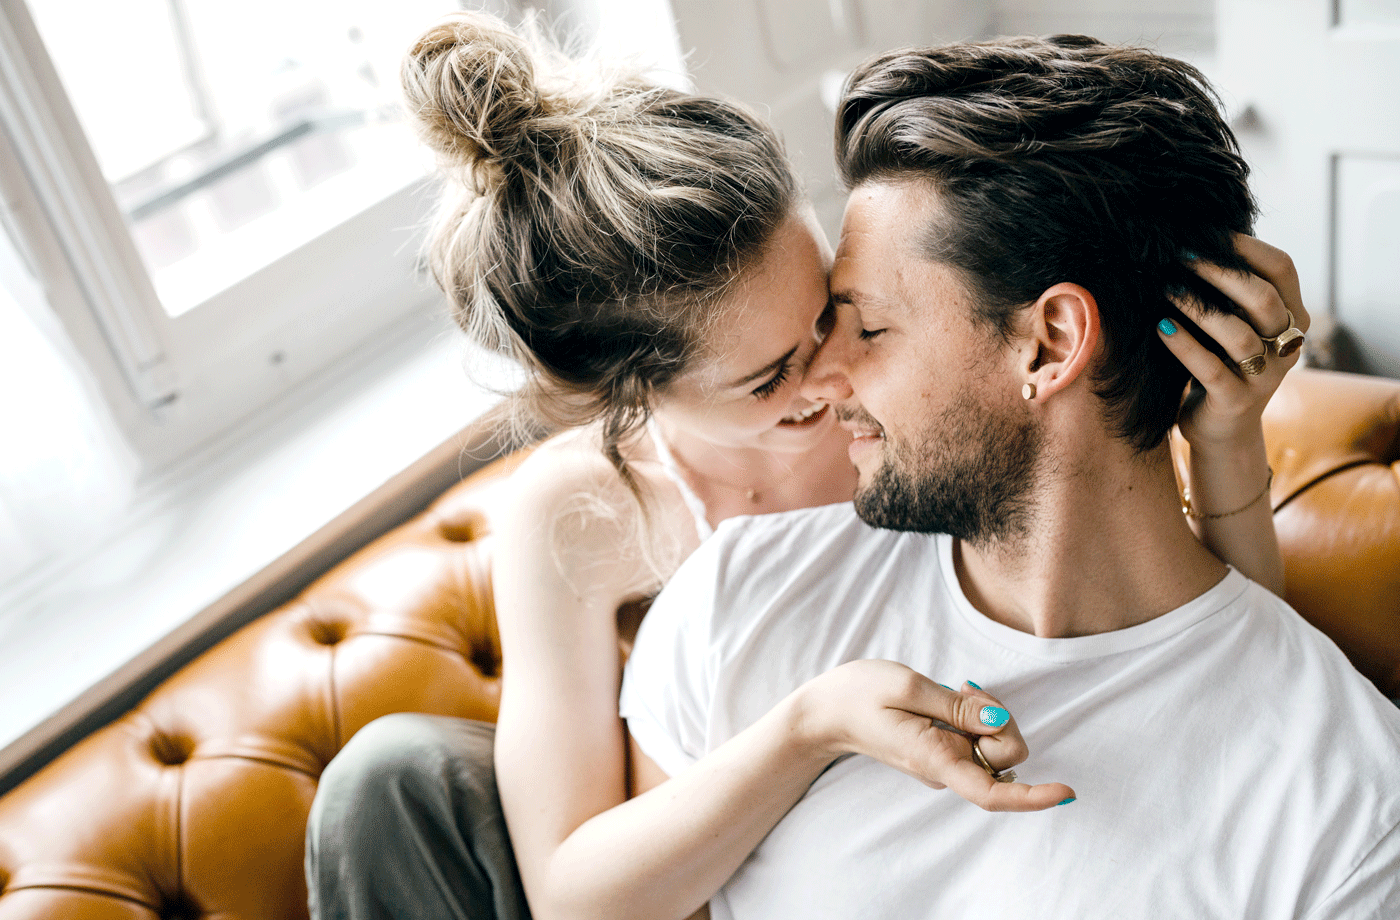 Myers-Briggs compatibility can help find your romantic match